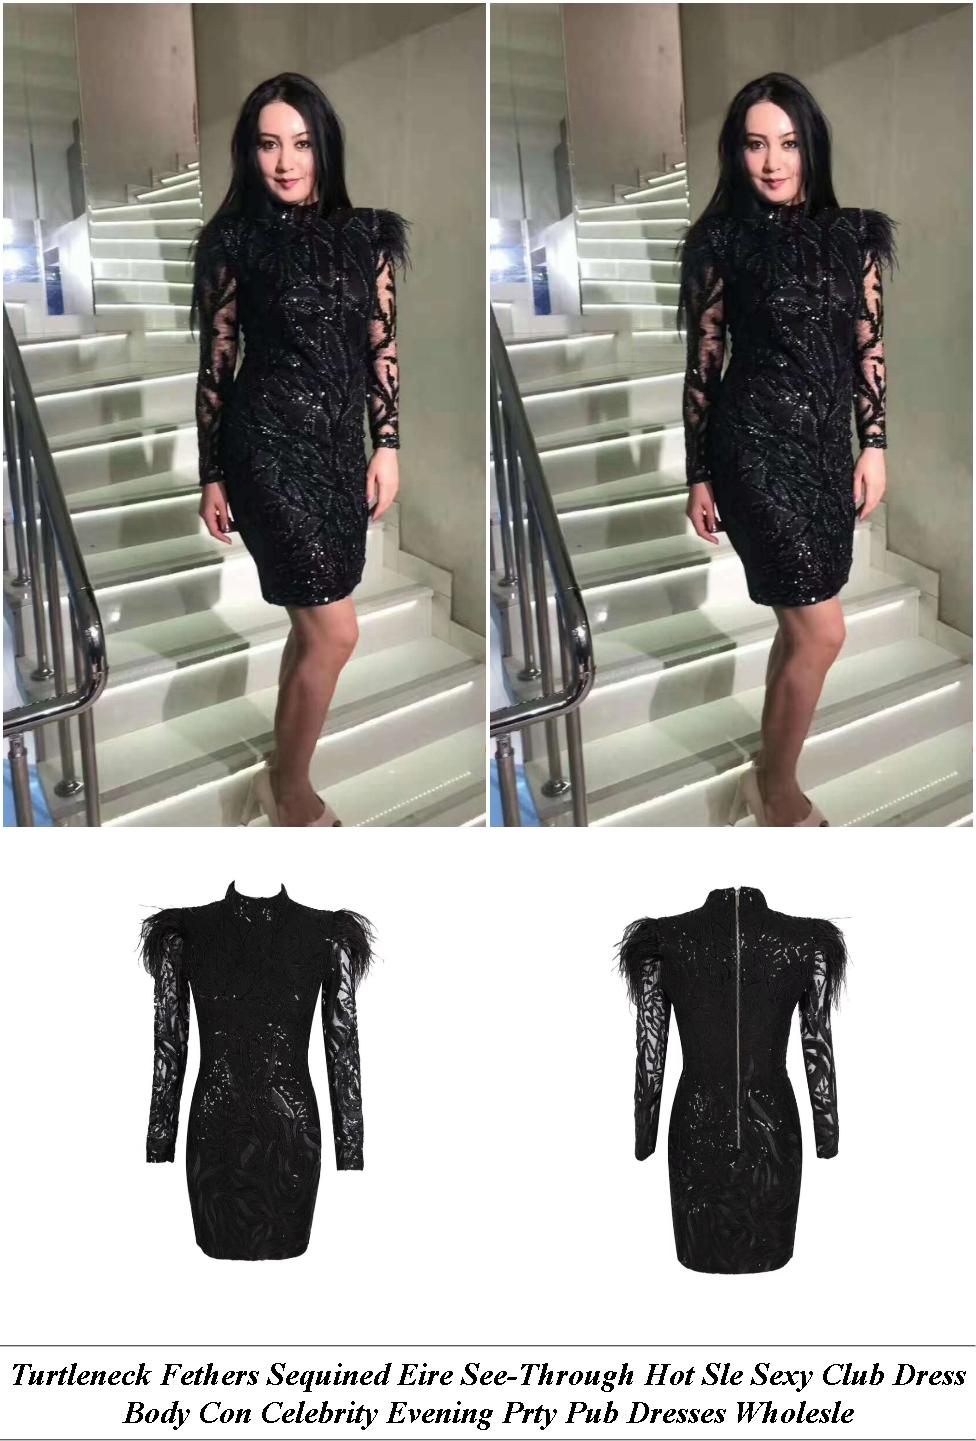 Long Prom Dresses Amazon - Est Fake Designer Clothes In Angkok - Plus Size Cocktail Dresses Online South Africa